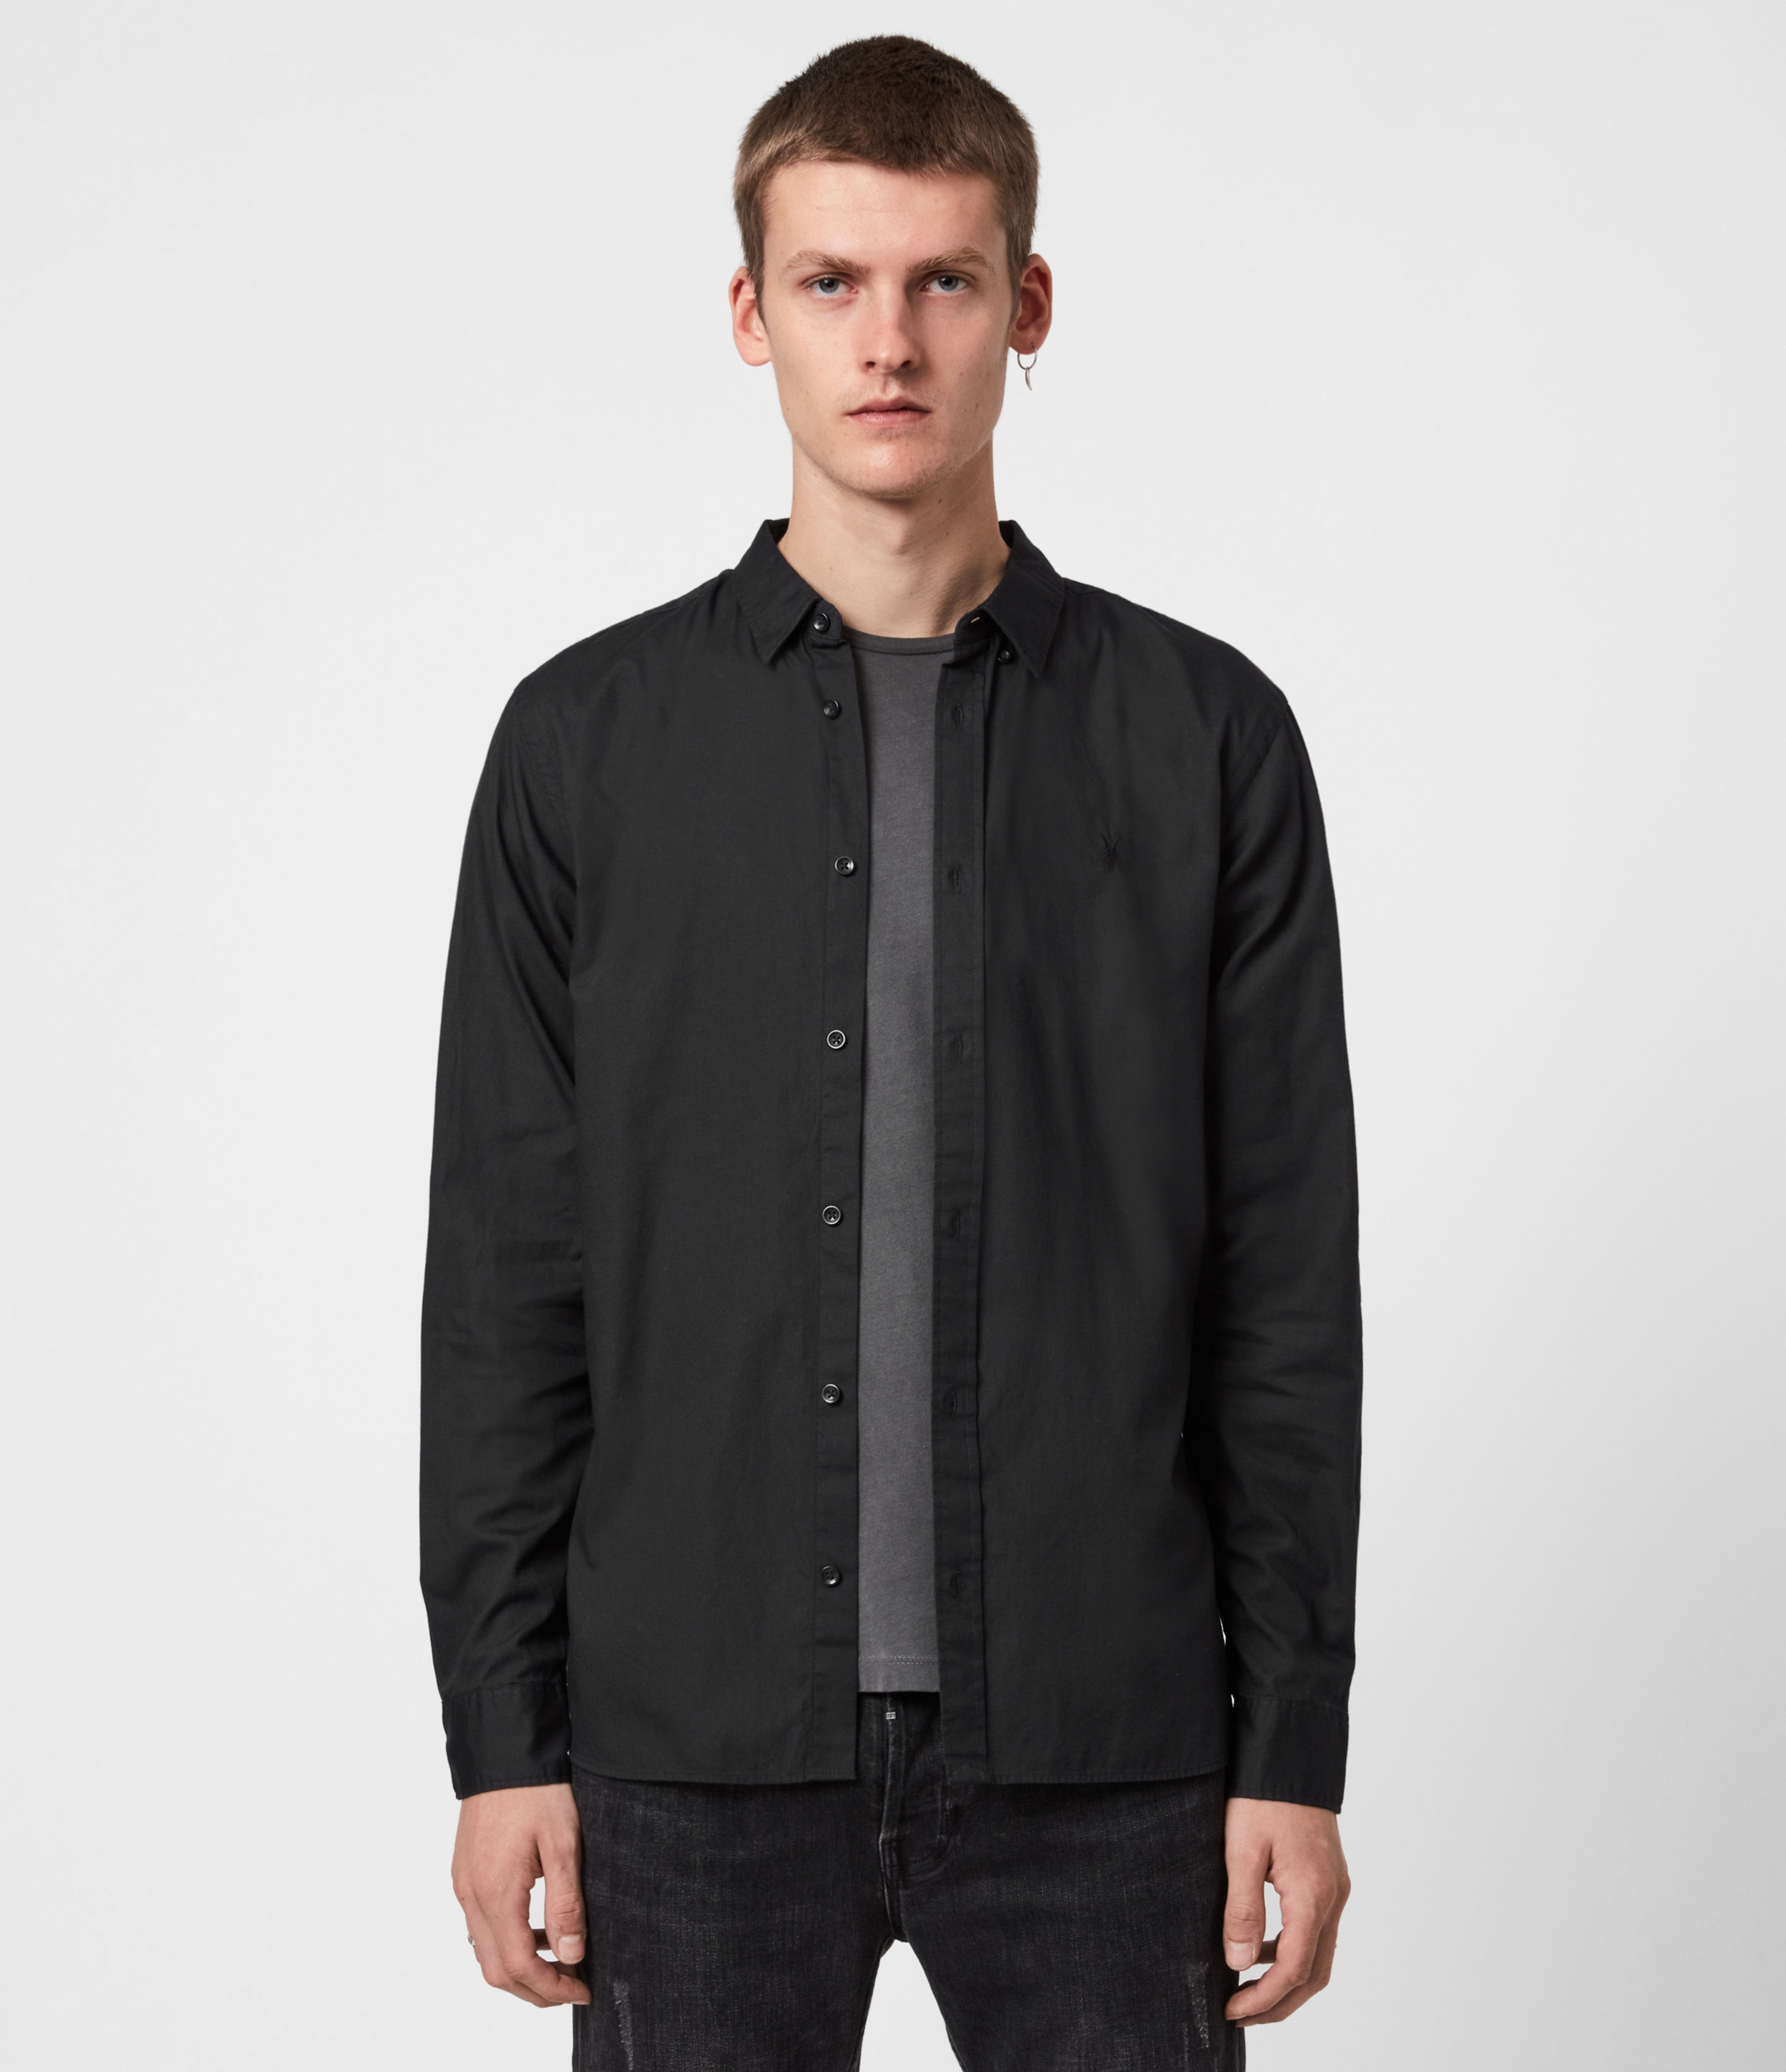 AllSaints Men's Cotton Slim Fit Redondo Long Sleeve Shirt, Black, Size: M